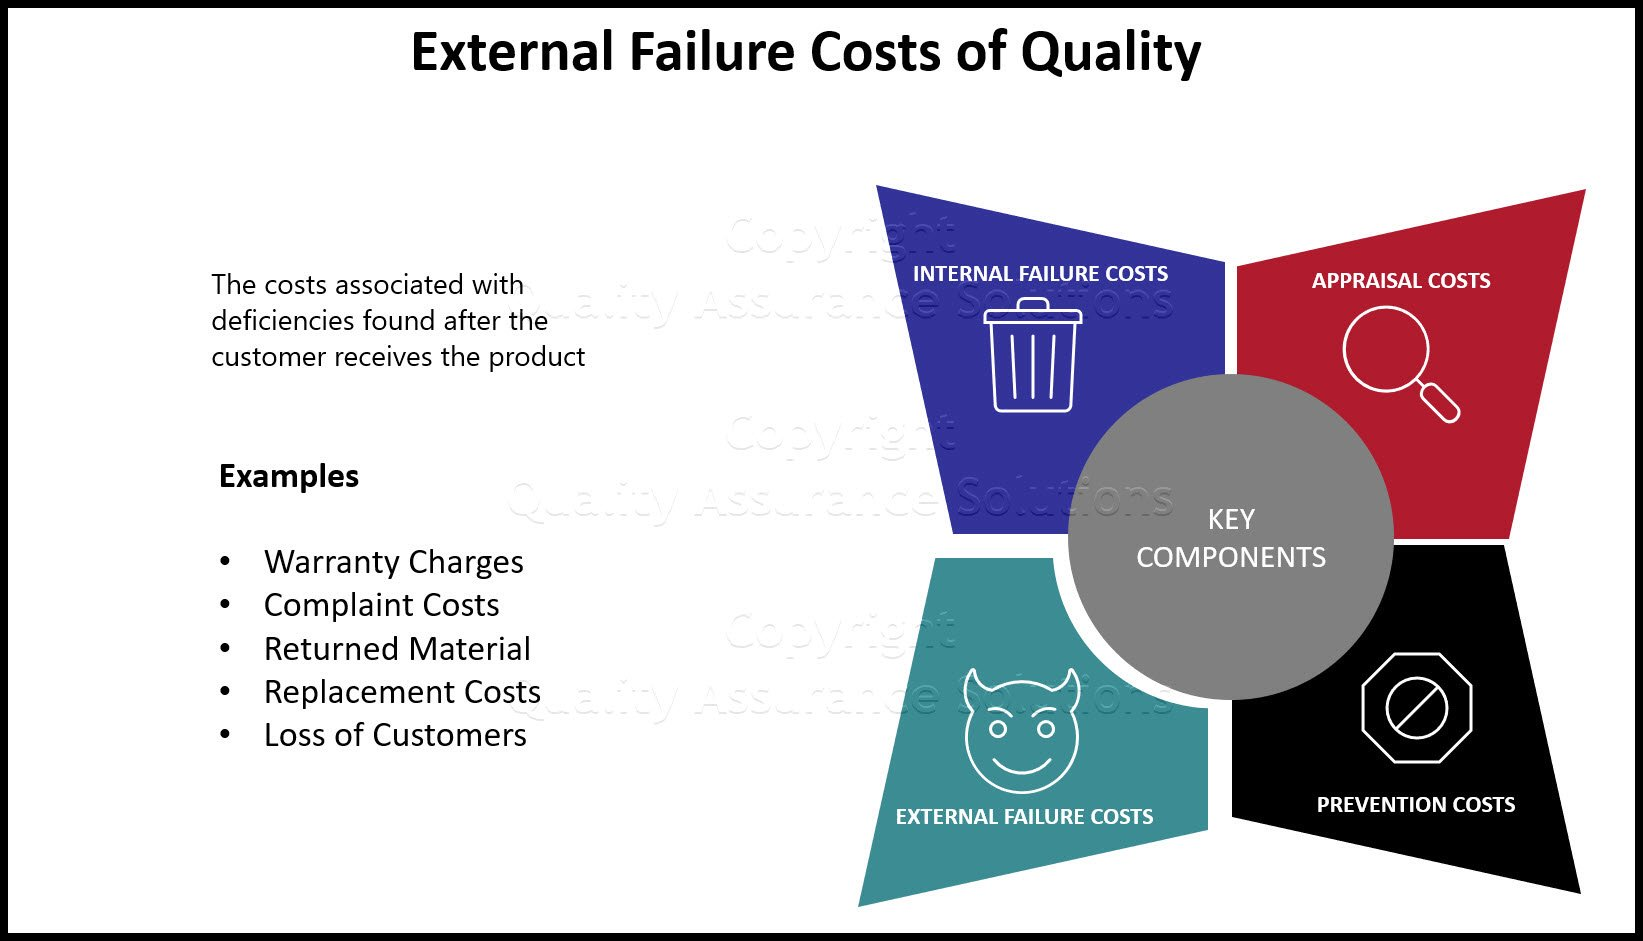 External Failure Costs of Quality